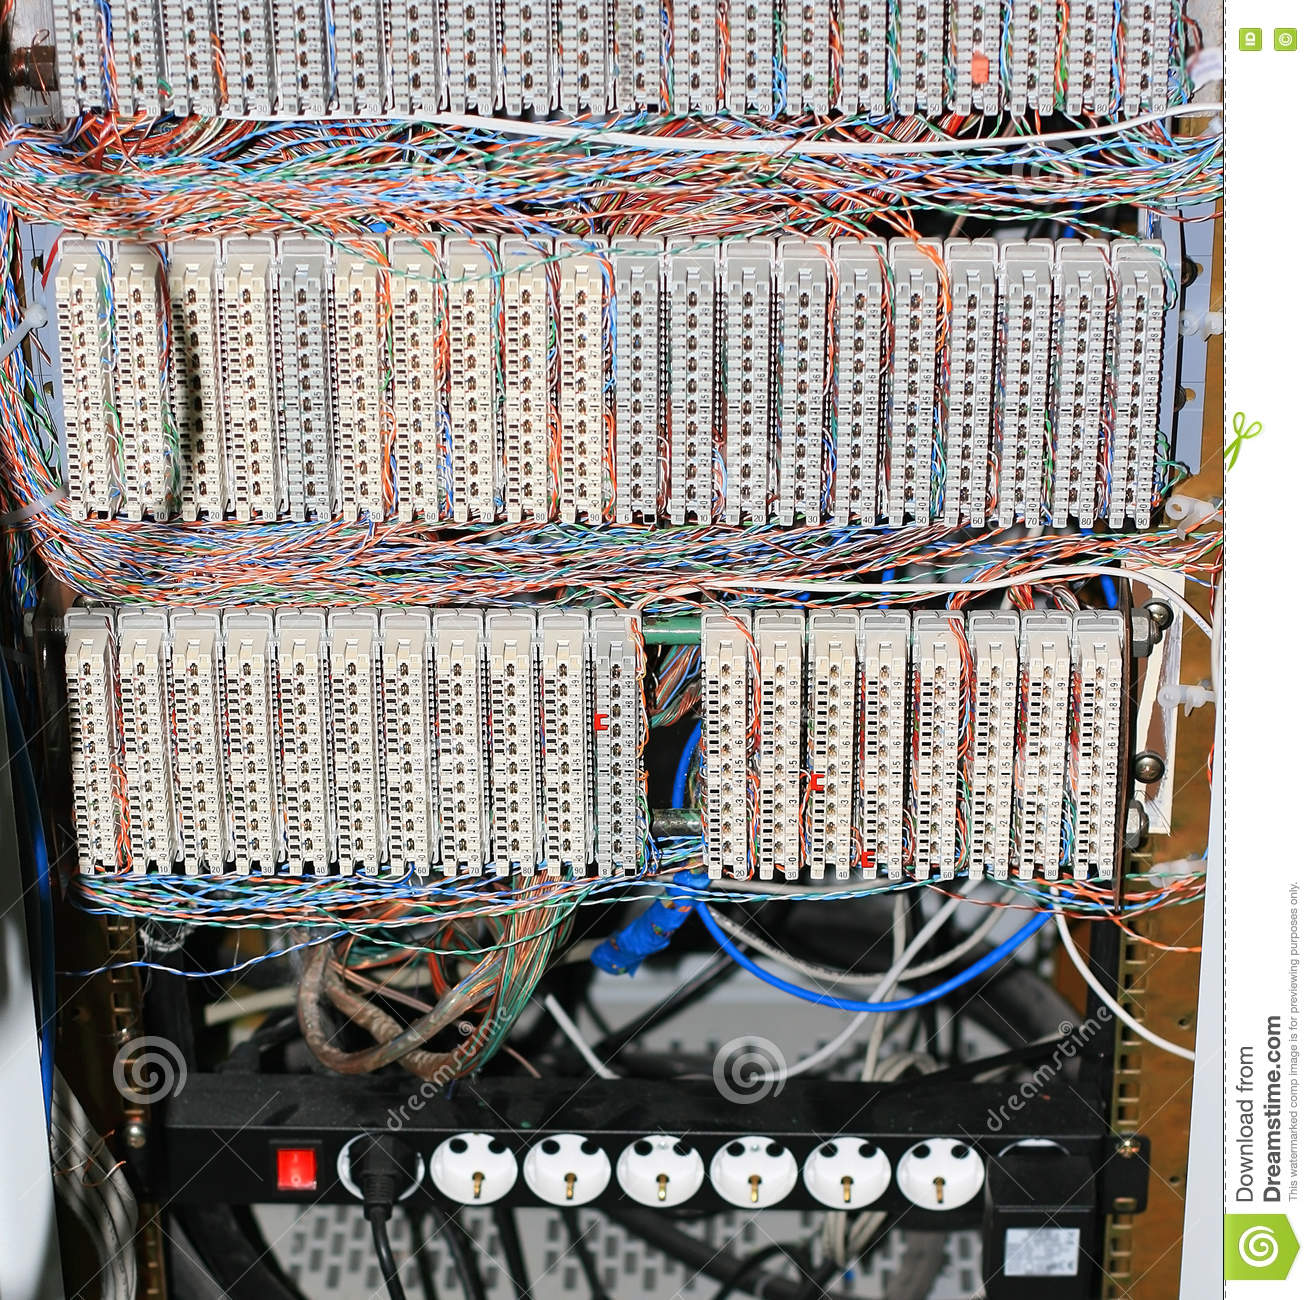 wiring closet stock image image of jack data connection 71463219 rh dreamstime com Backbone Model with Network Wiring Closet Electric Closet Systems